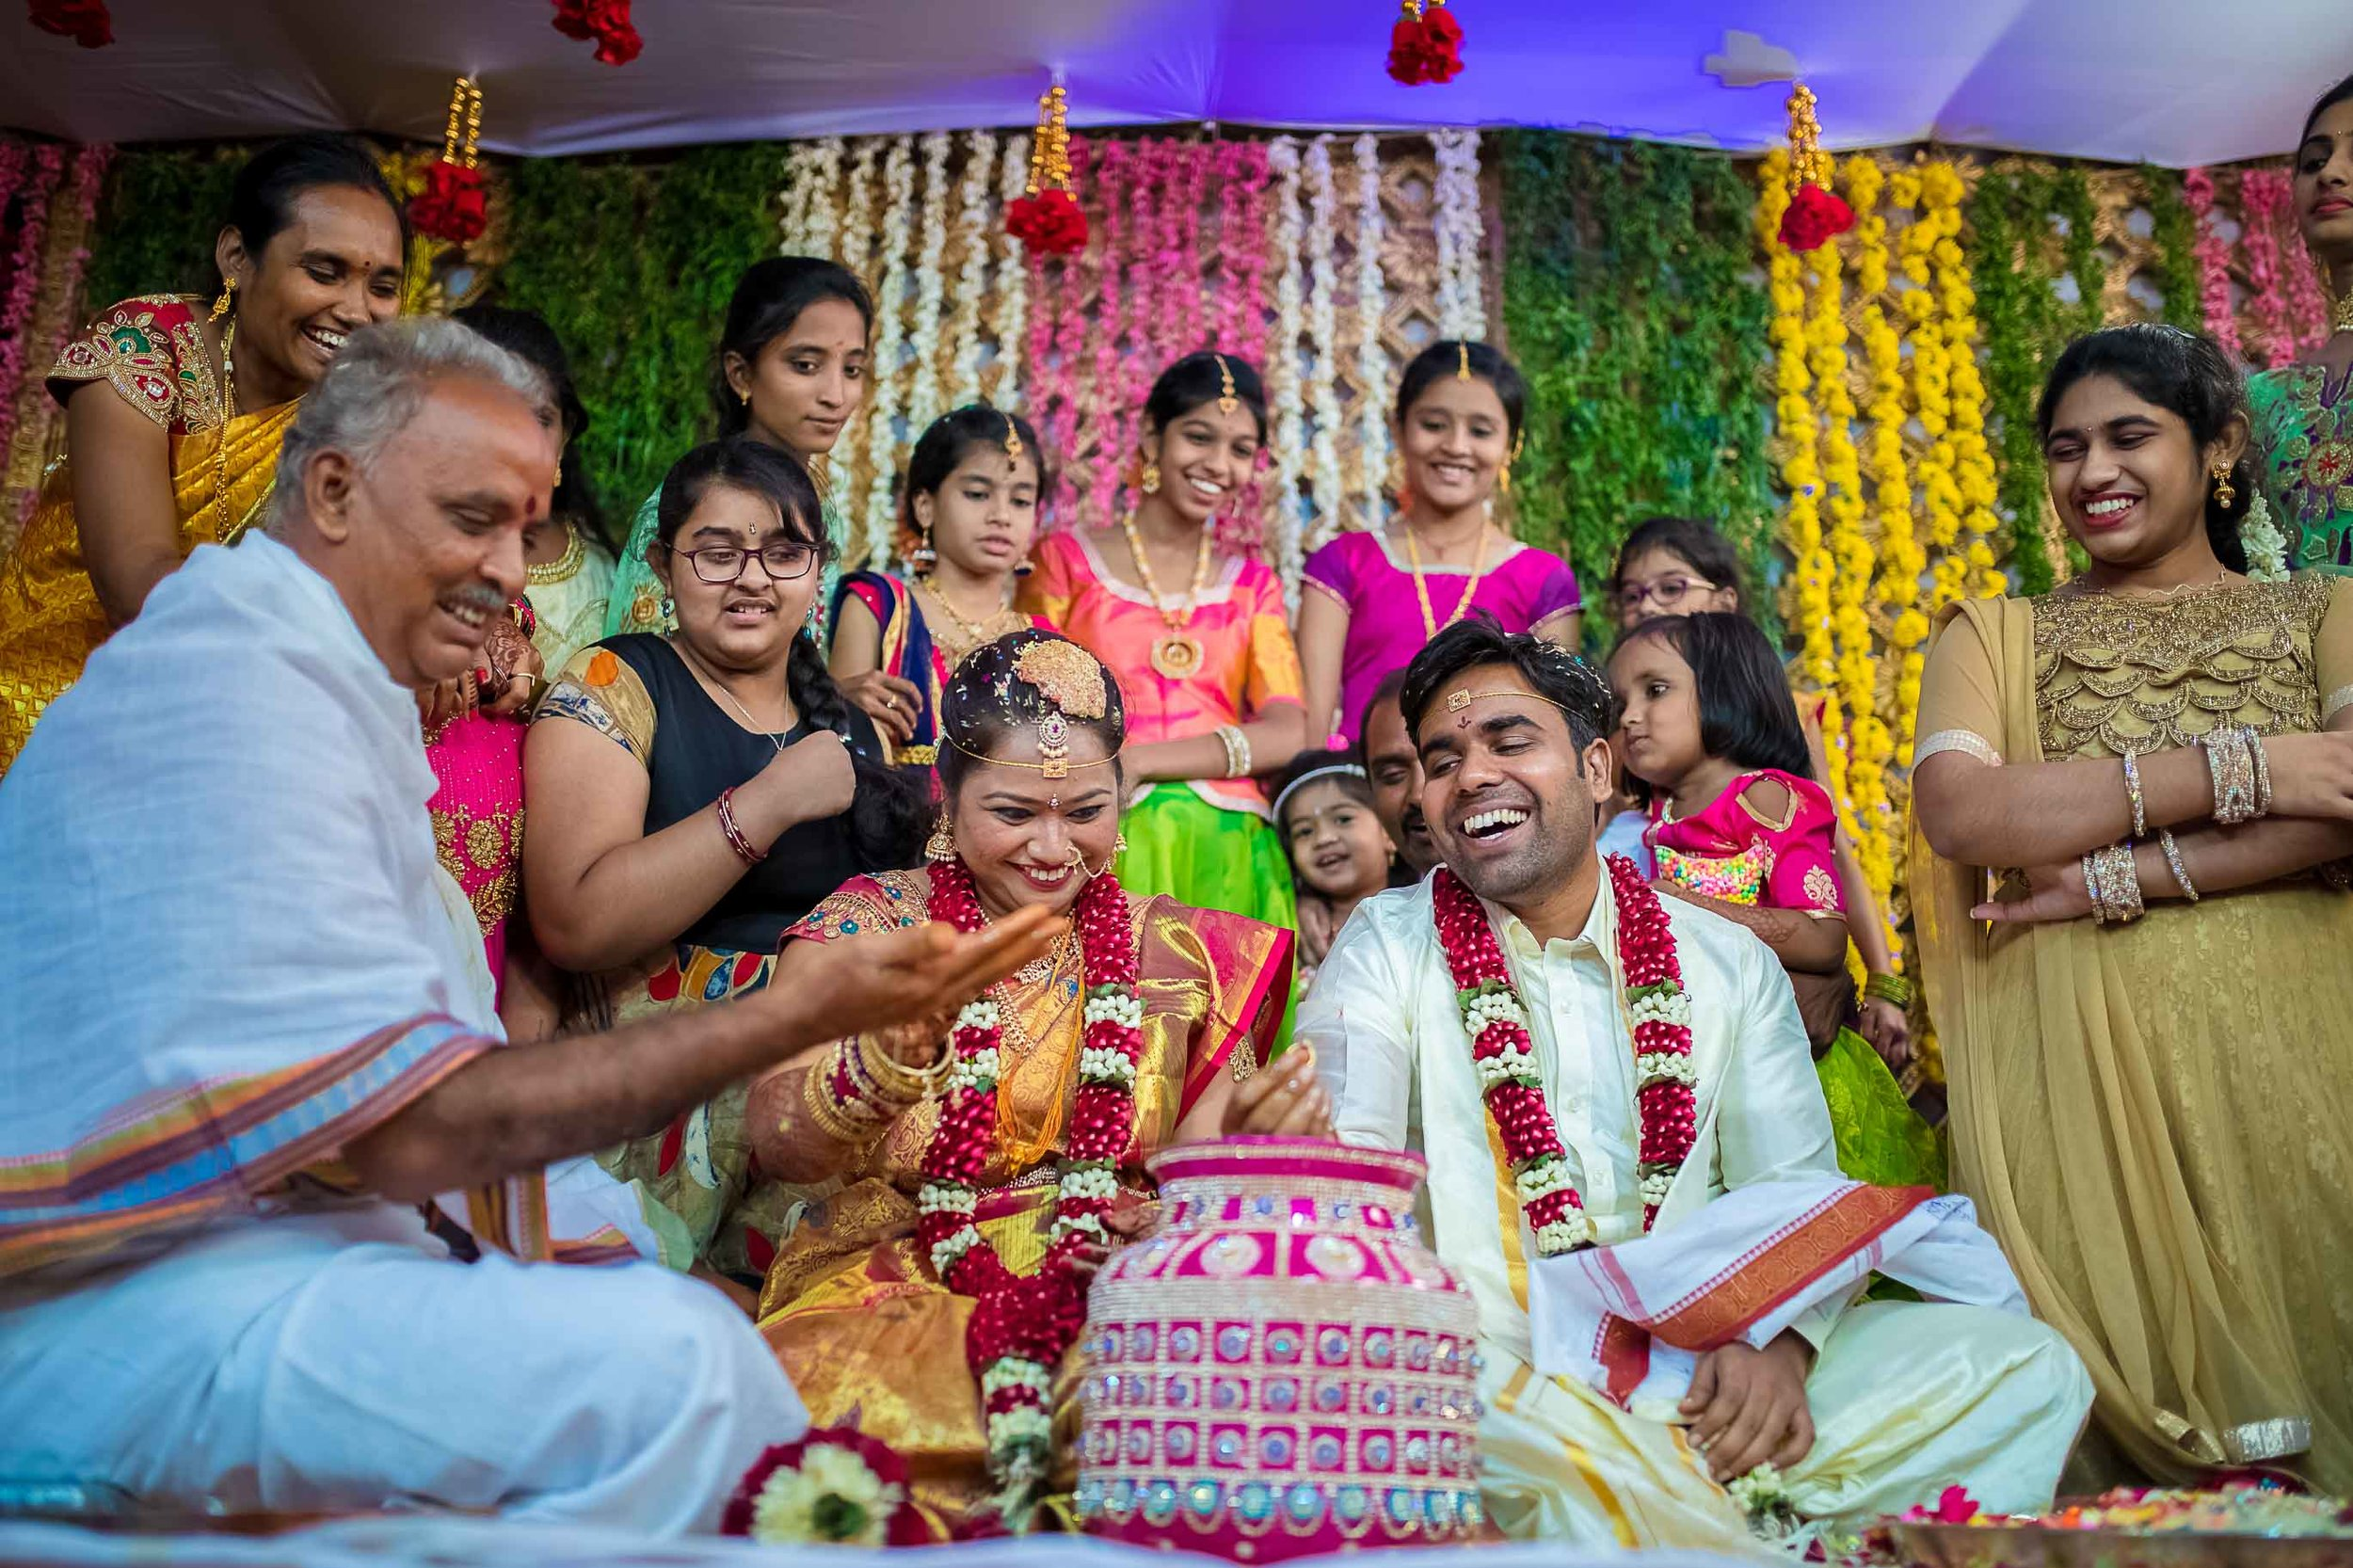 Pixel-Chronicles-Alekhya-Chaitanya-Nellore-Candid-Wedding-Ring-Finding-Ceremony-27.jpg